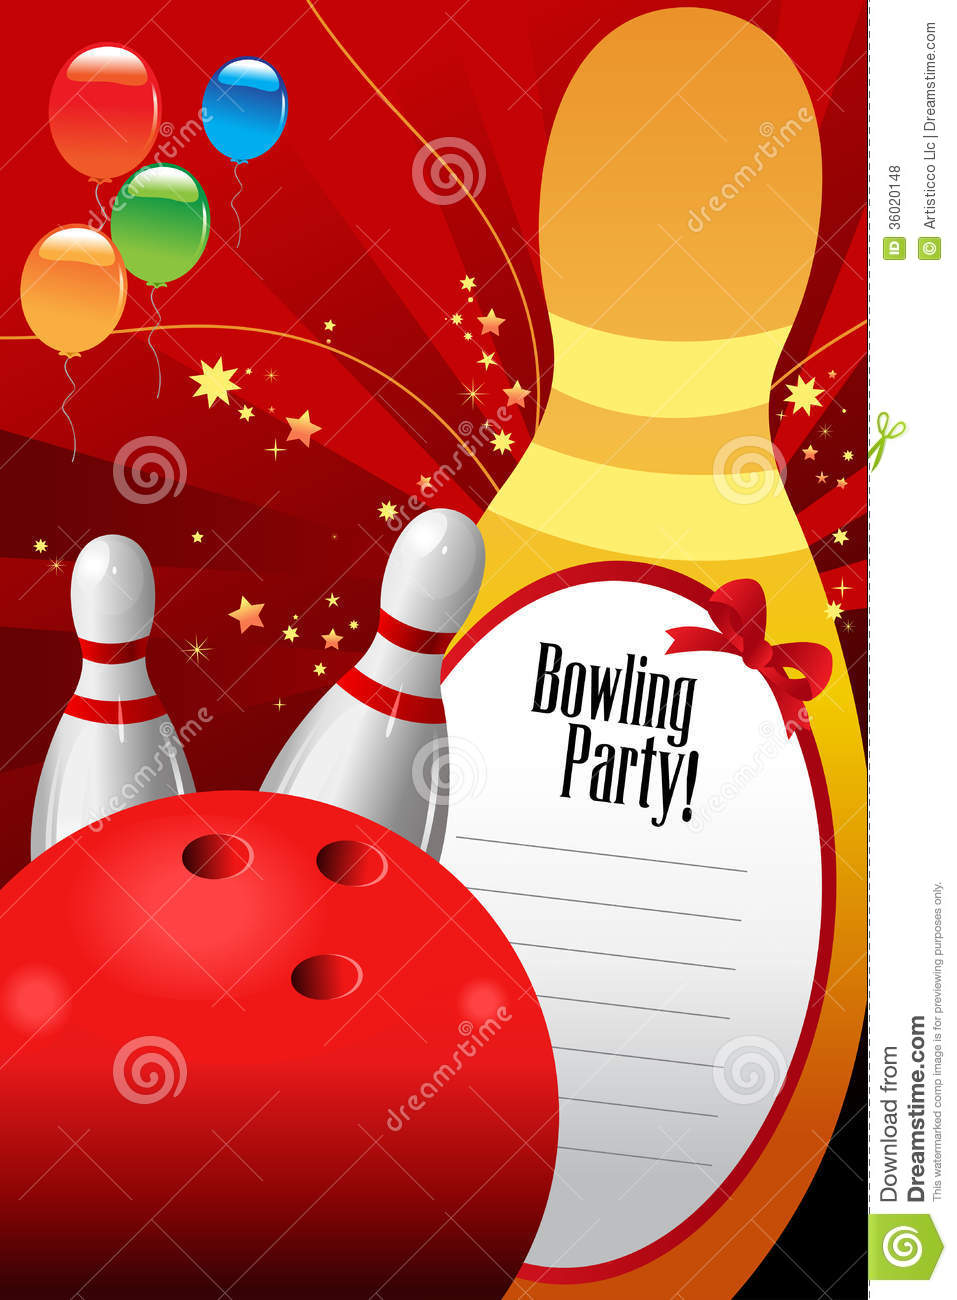 Bowling Party Invitation Template Royalty Free Photos – Printable Bowling Party Invitations